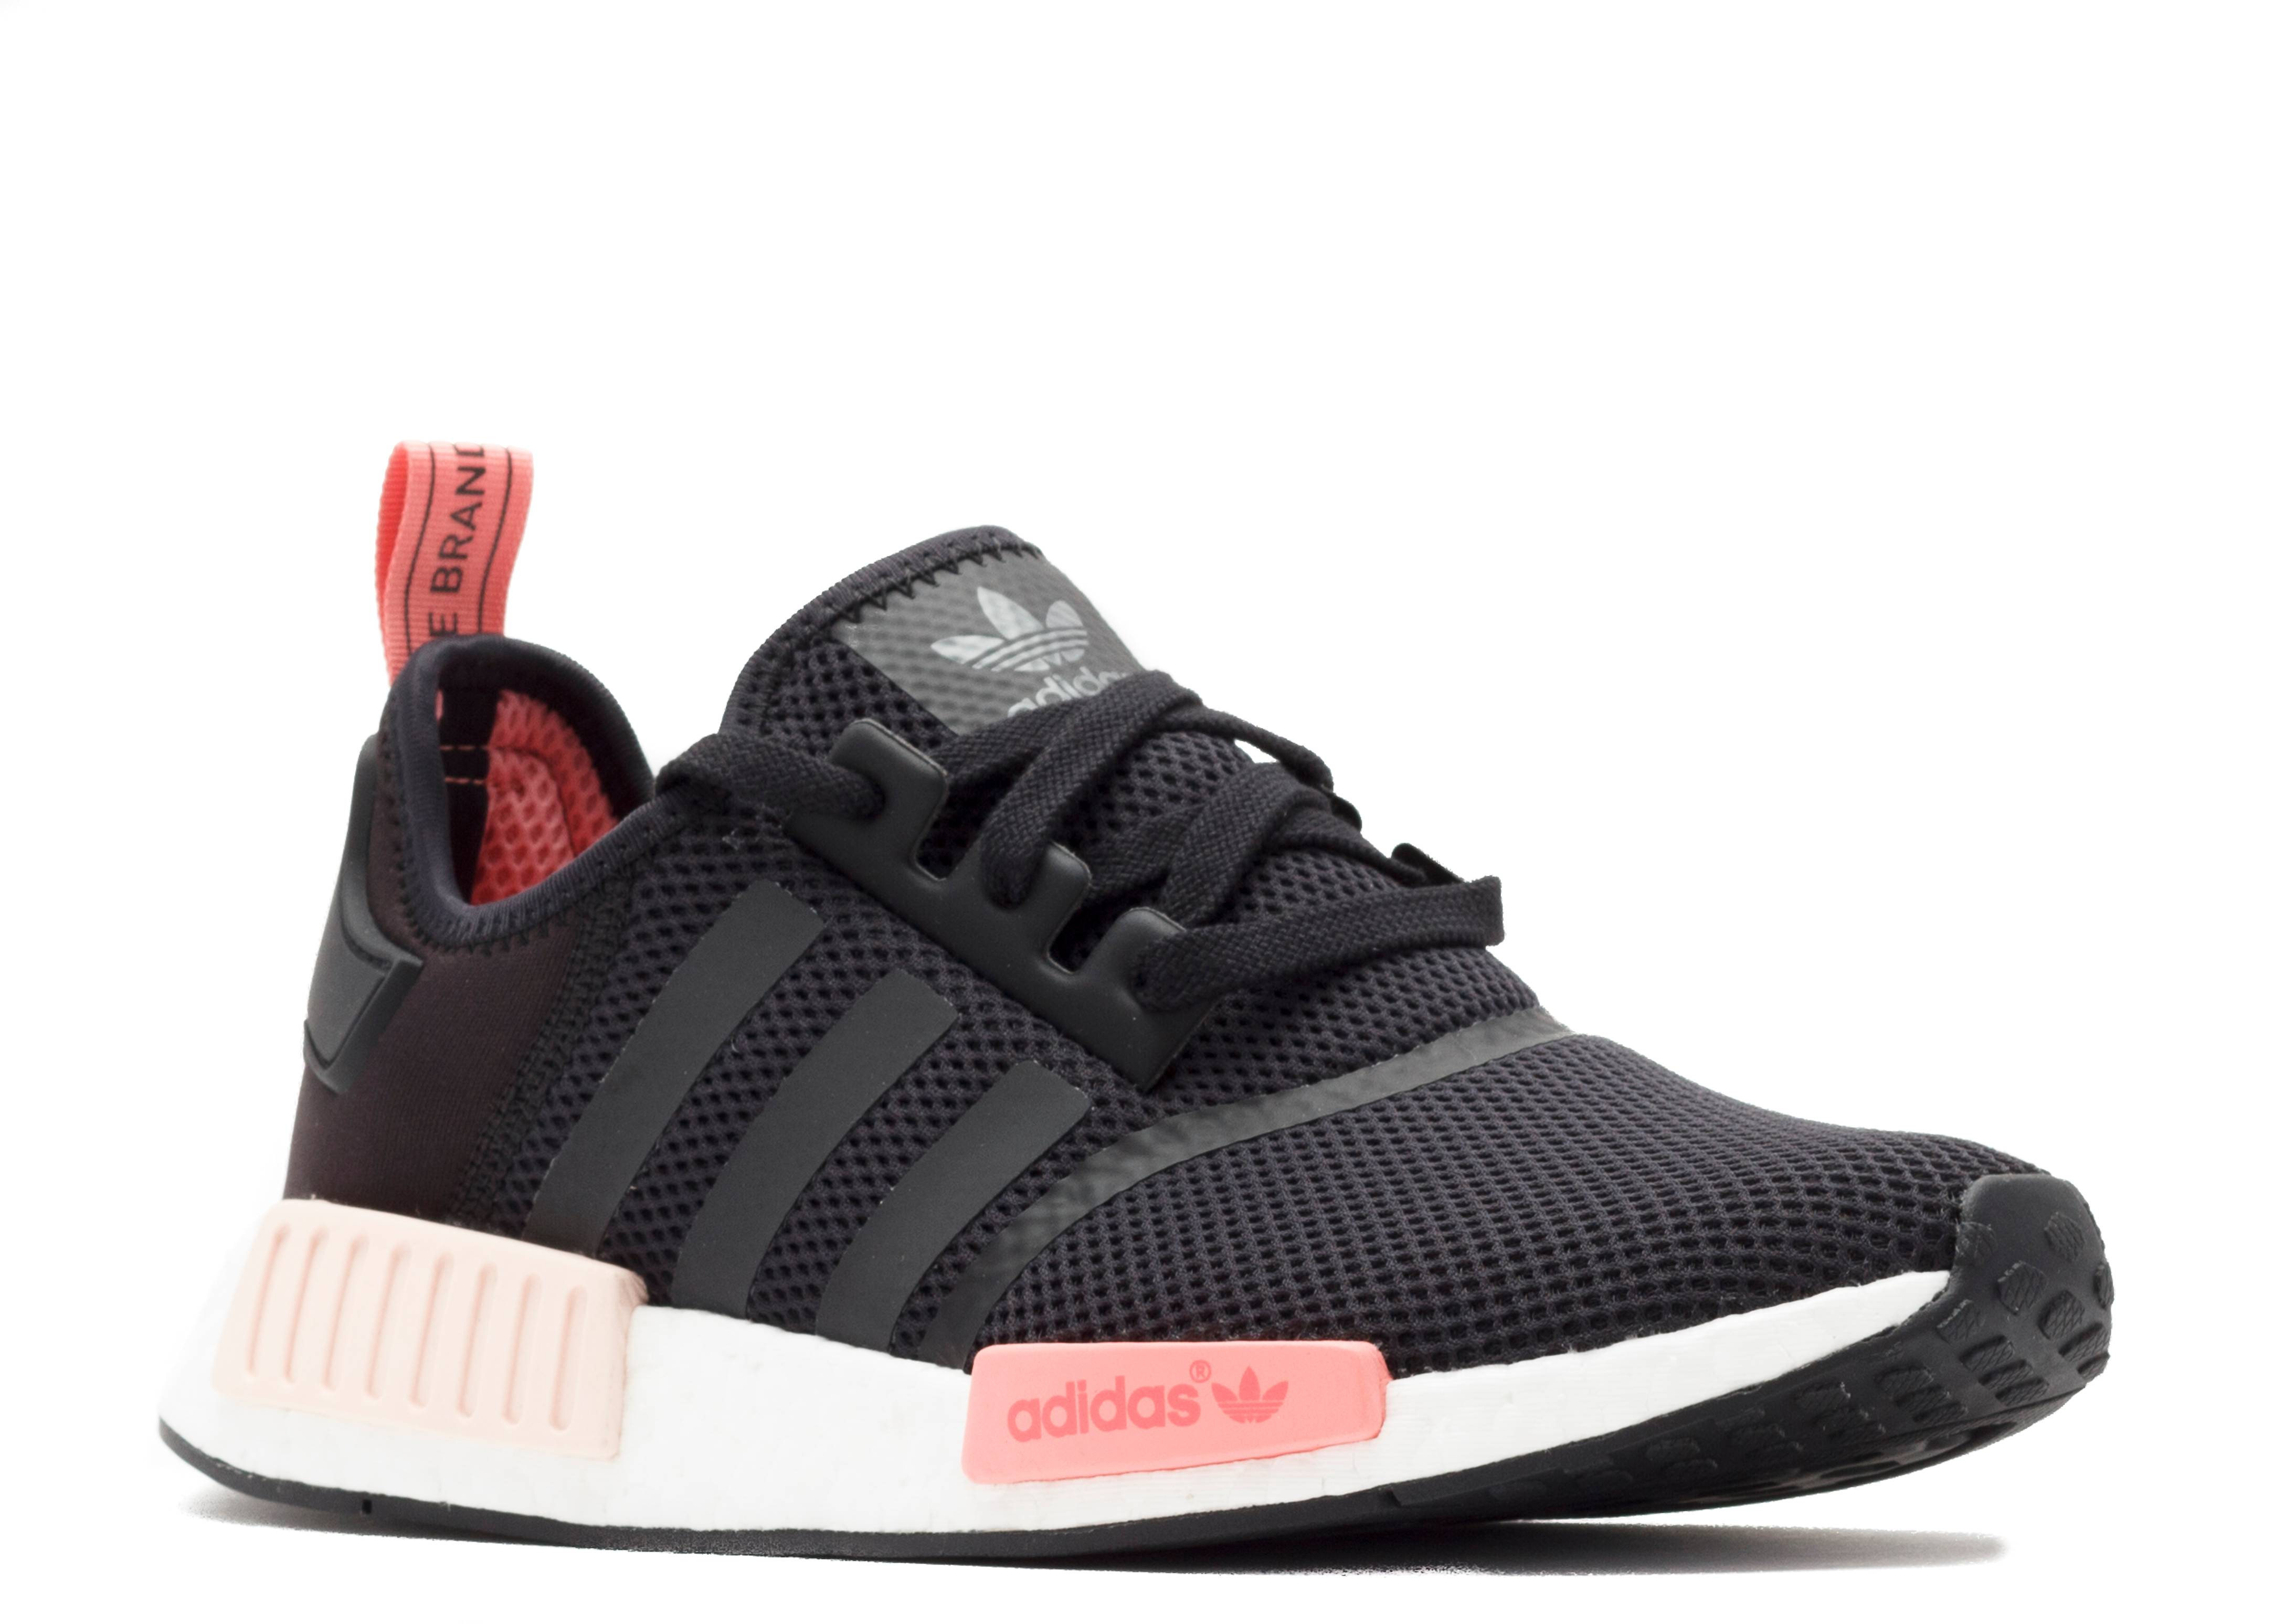 Adidas Nmd R1 Black And Pink fawdingtonbmw.co.uk 54352876f